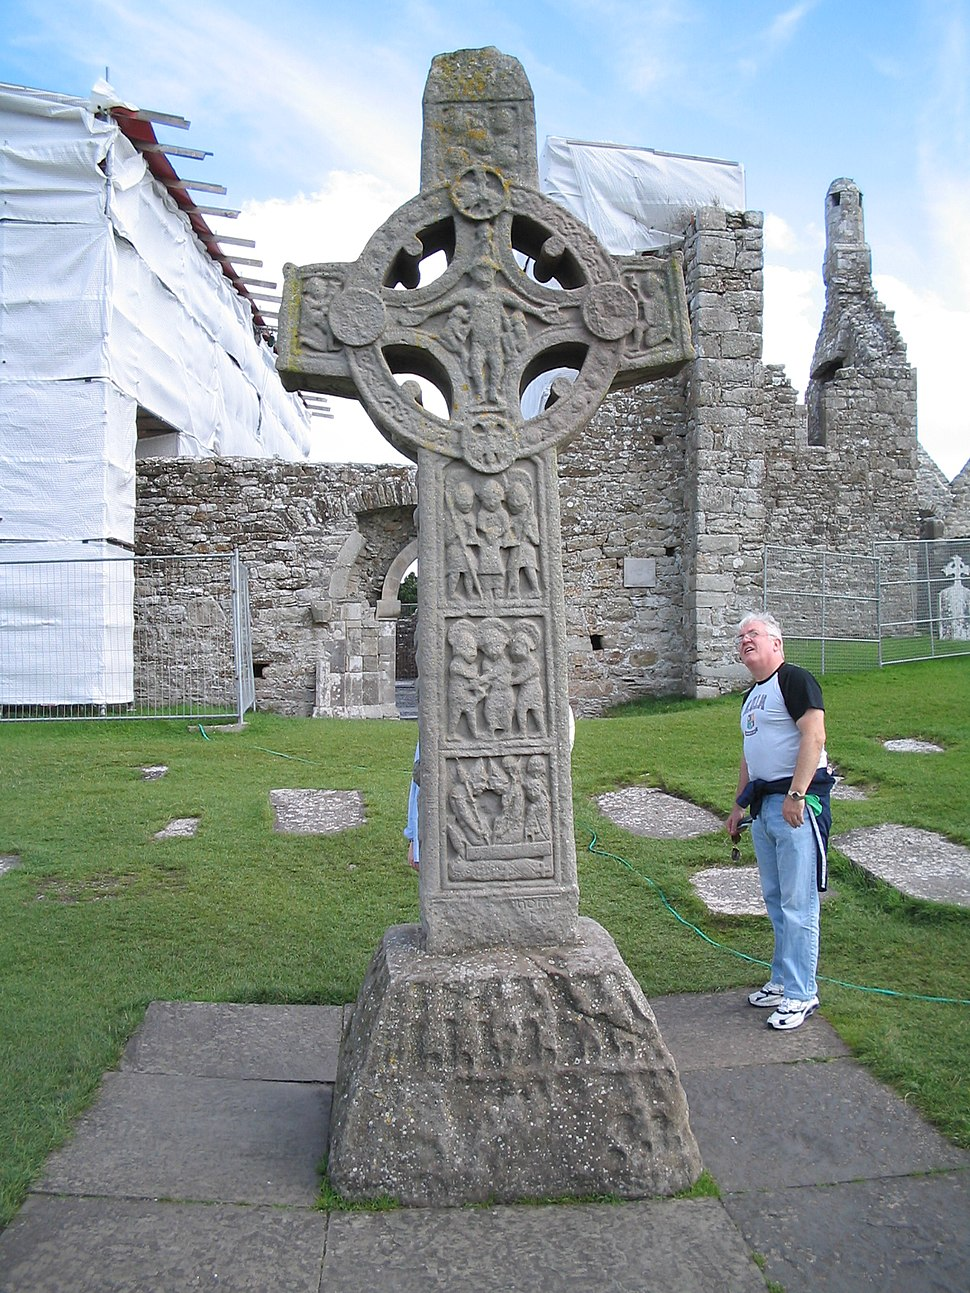 Cross of the Scriptures, Clonmacnoise, Co. Offaly, Ireland